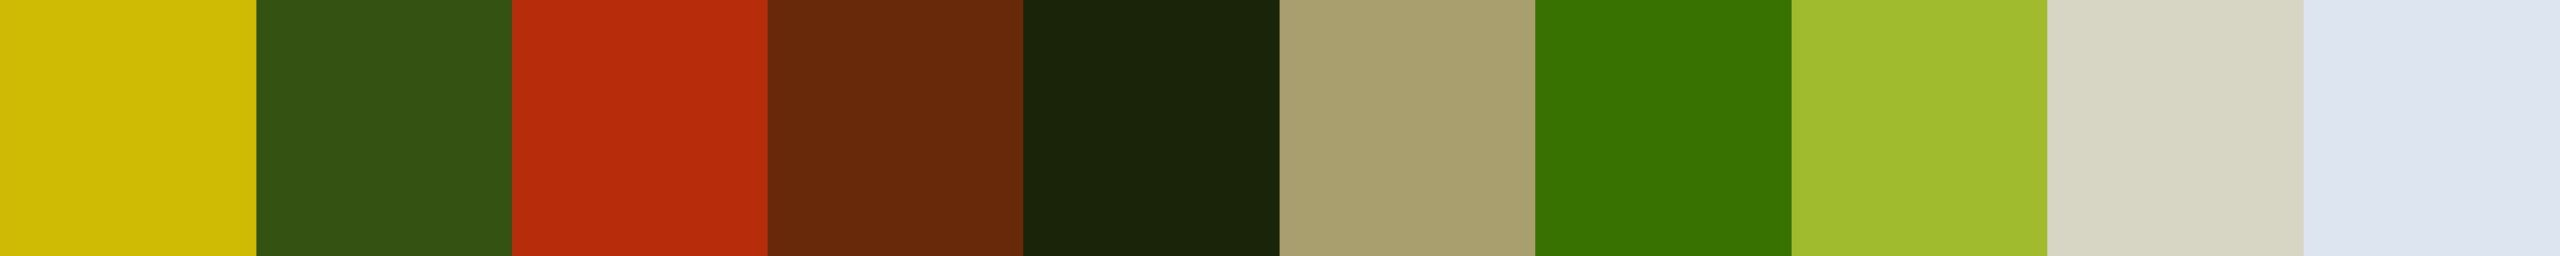 310 Couvoulama Color Palette